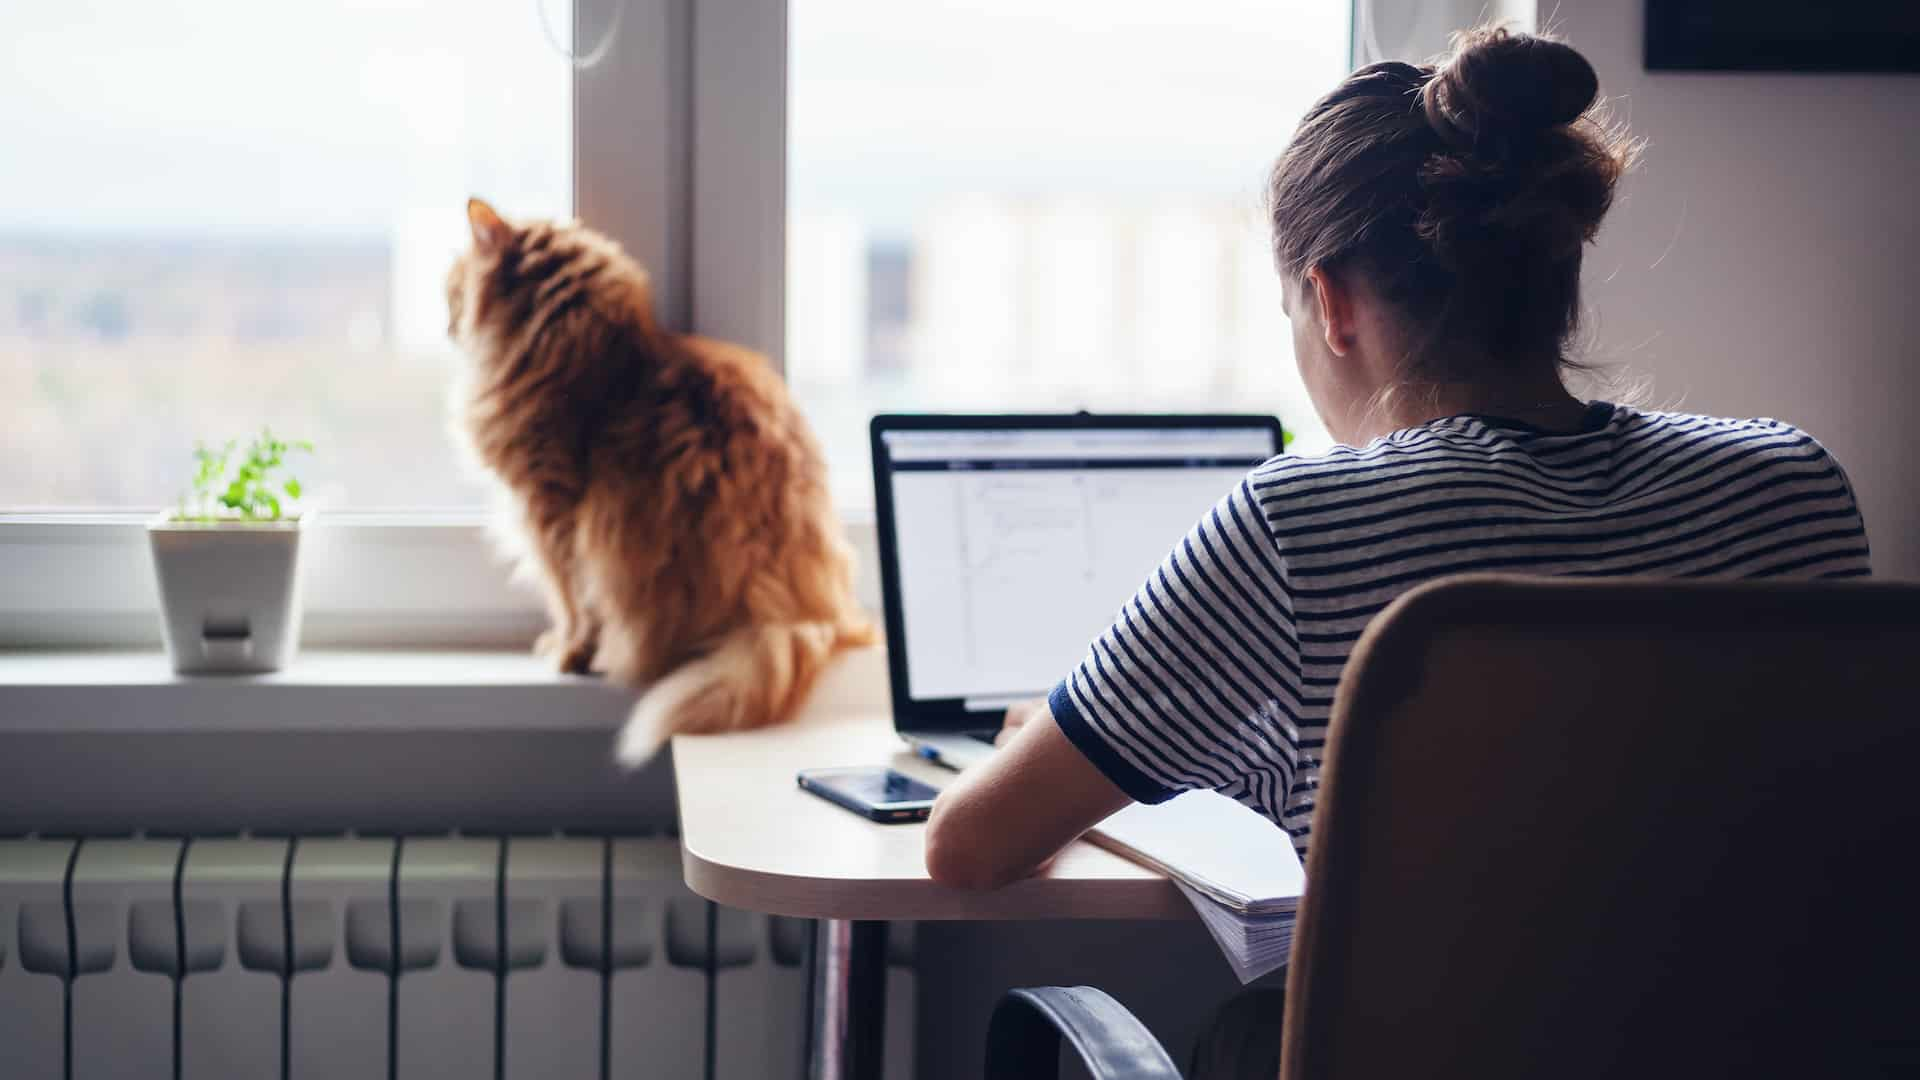 Saving Energy While Working from Home Banner Image